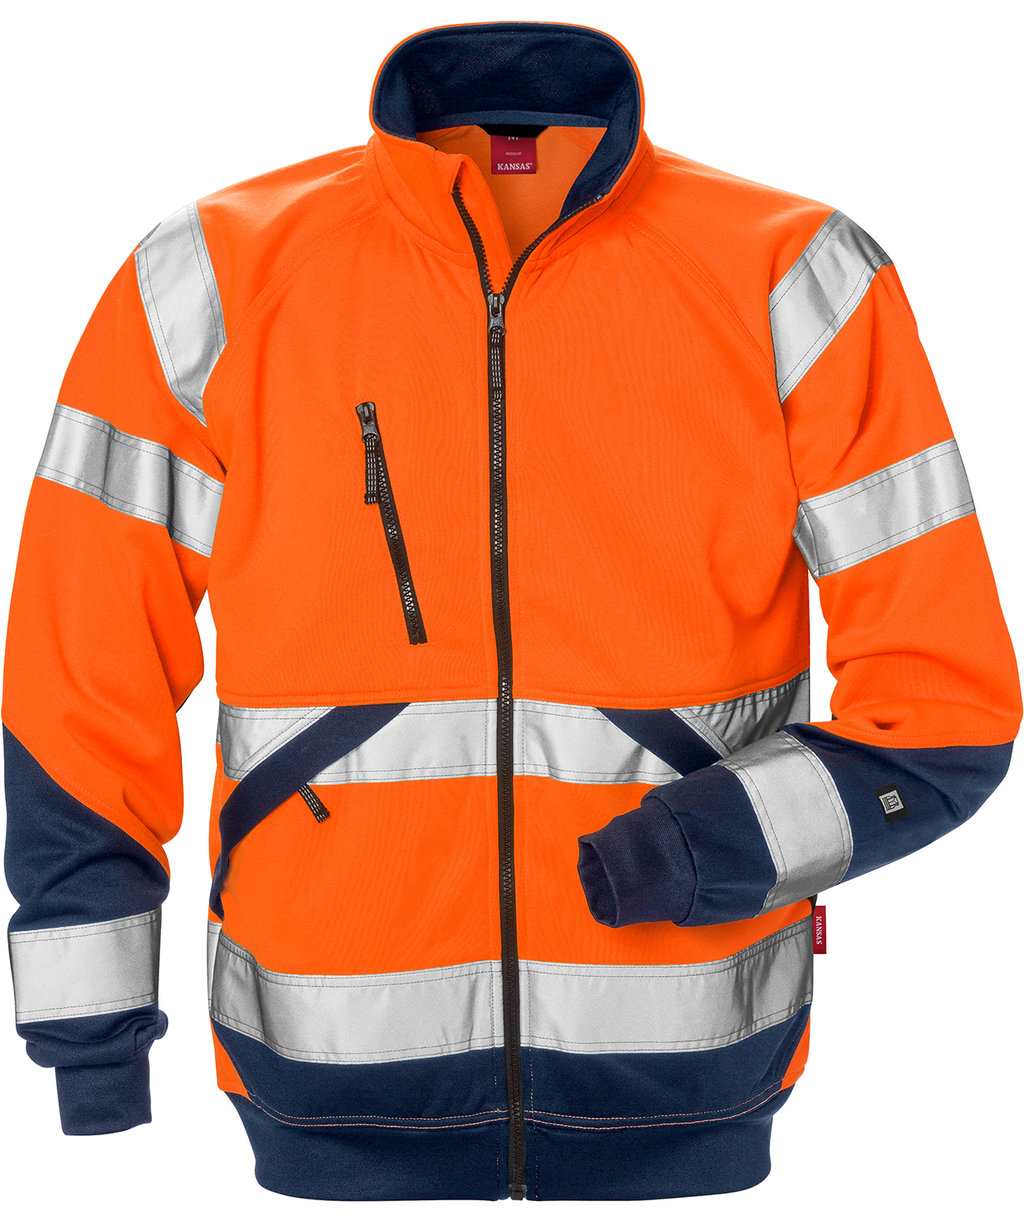 Kansas Strickjacke, Hi-Vis Orange/Marine